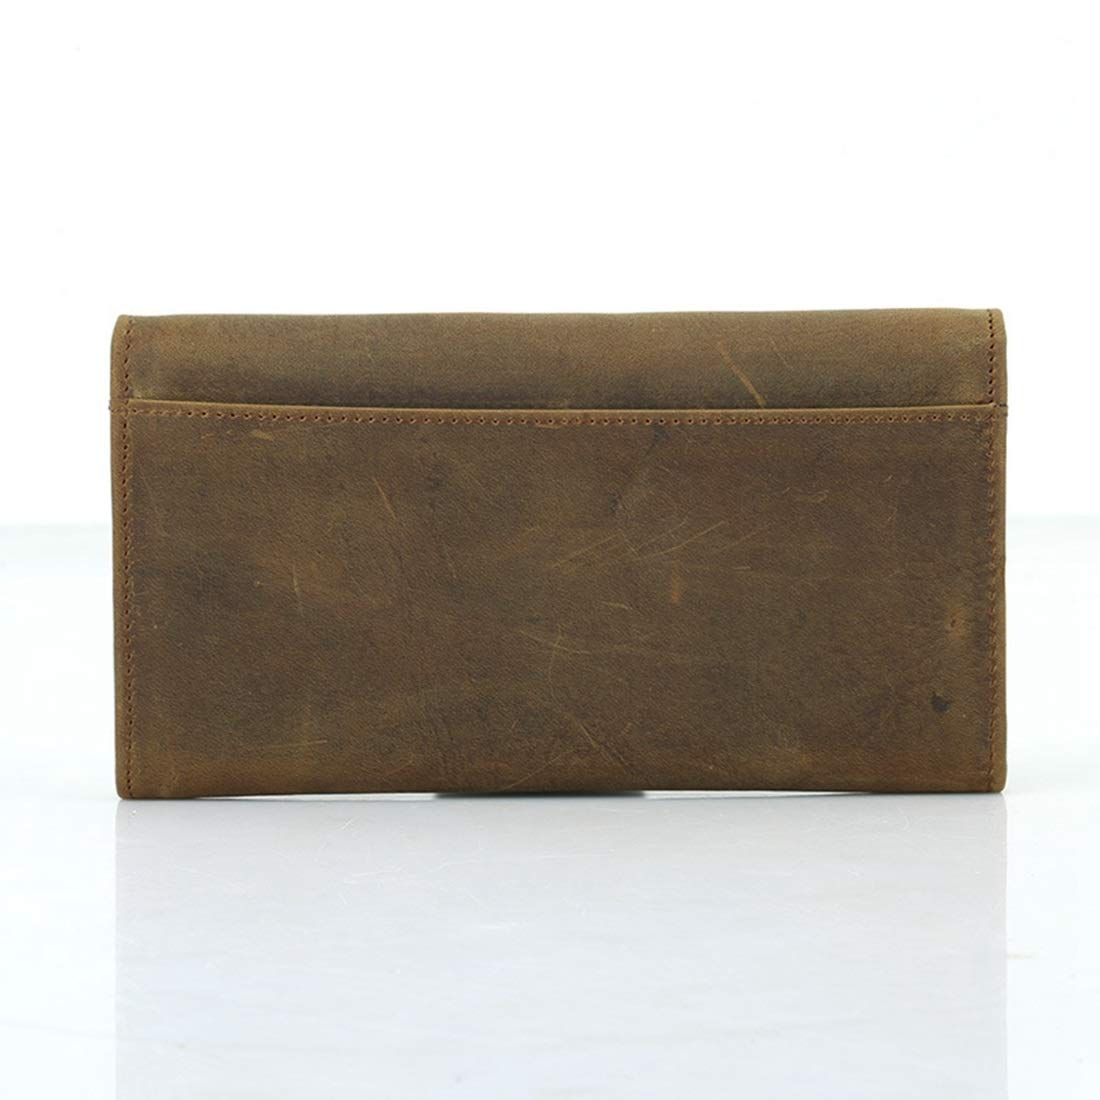 KRPENRIO Vintage Mens Multi-Function Leather Long Wallet 2 Fold Wallet Color : Dark Brown